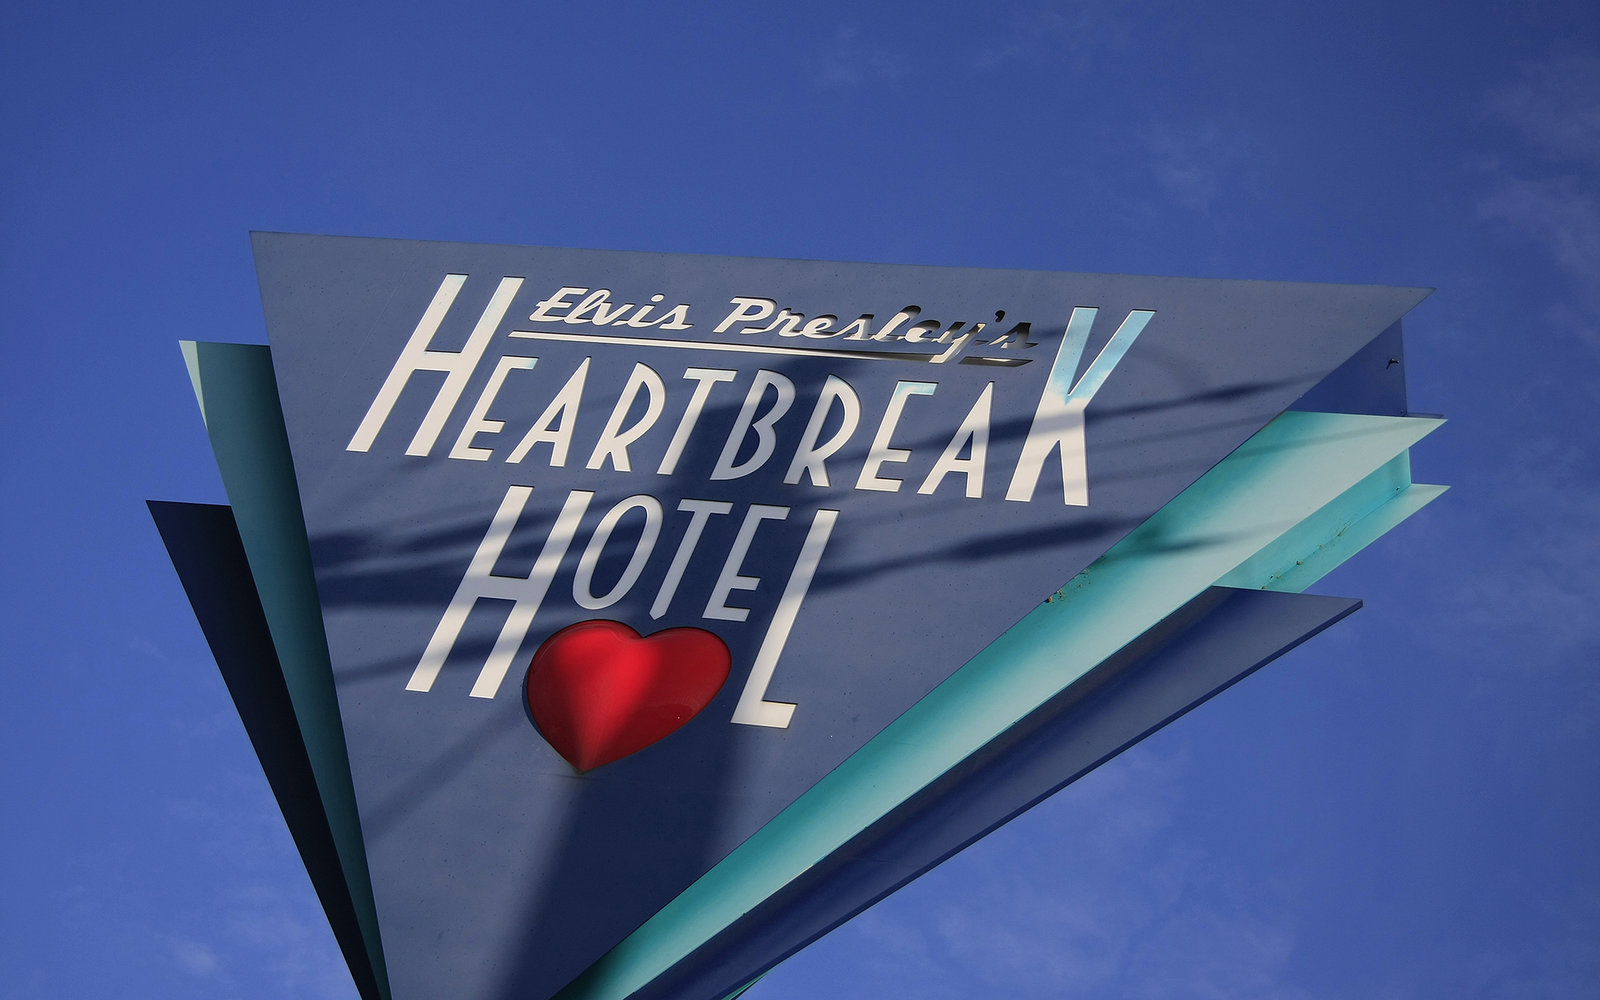 Heartbreak Hotel, Memphis, Tennessee, USA